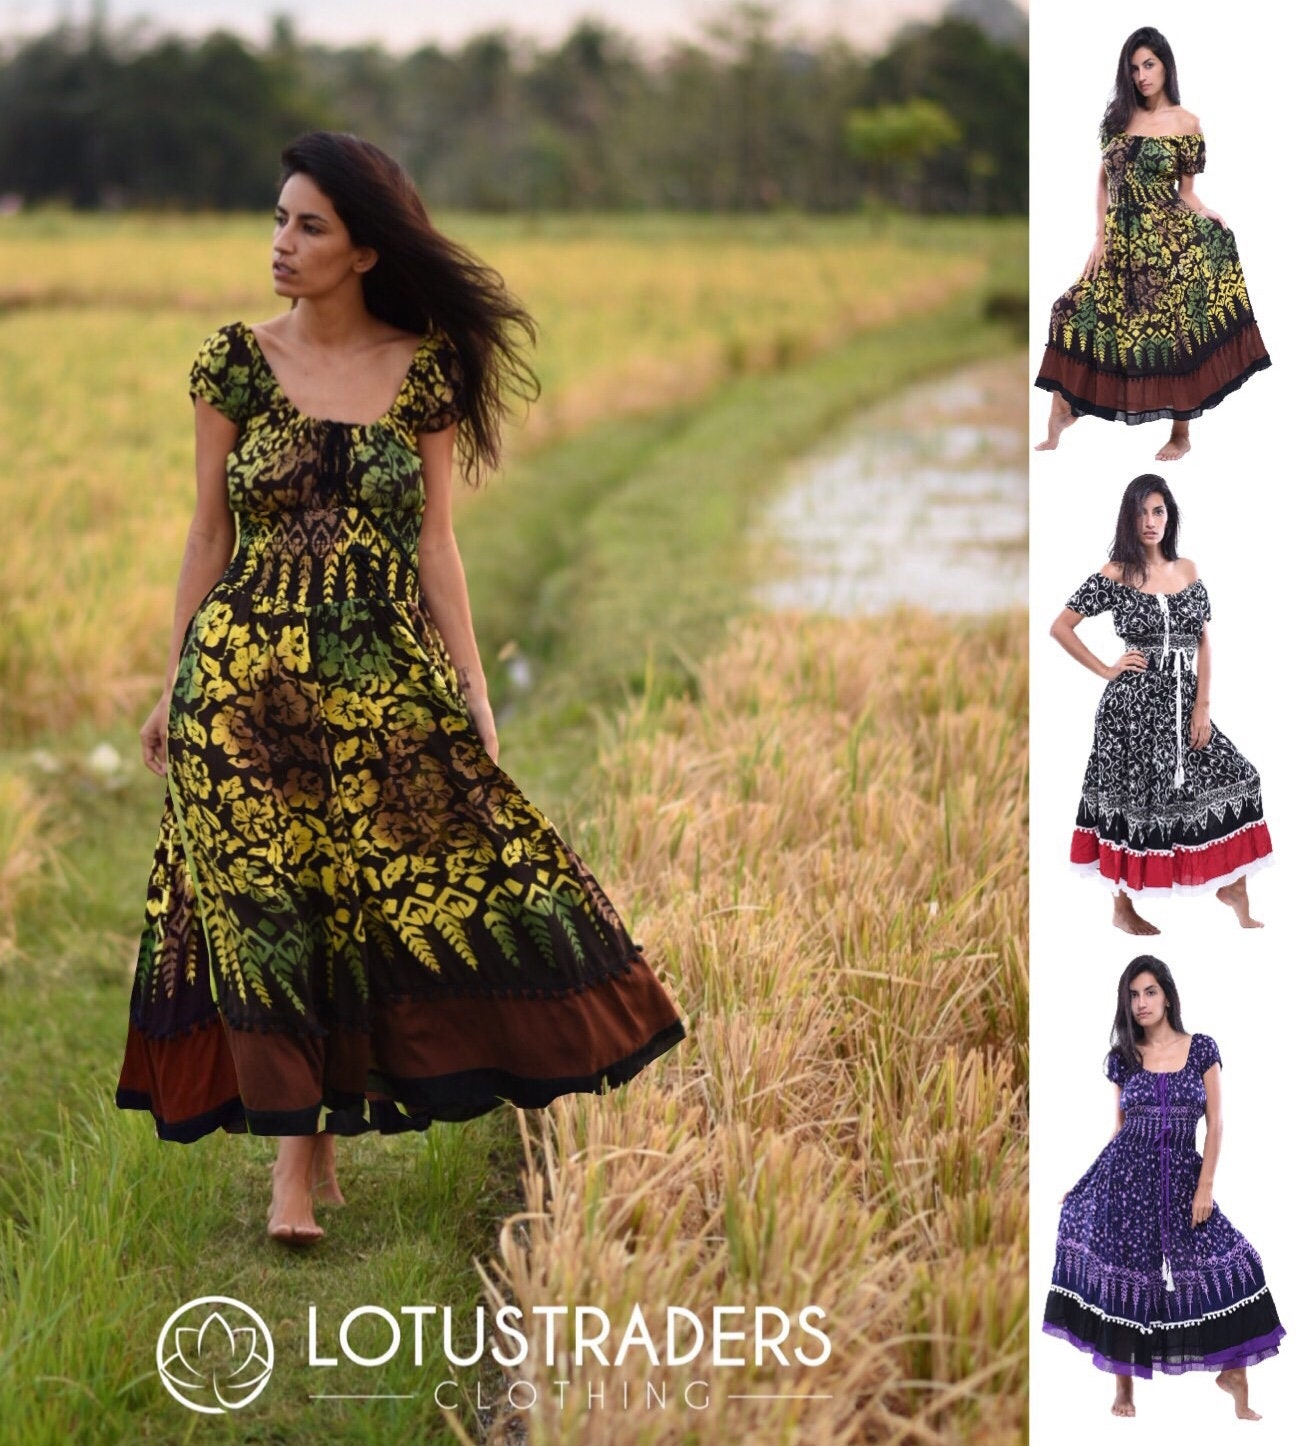 FASHION 3//4 LENGTH DRESS UNDER LONG MADE TO ORDER Y432 LotusTraders MIDI WOMEN